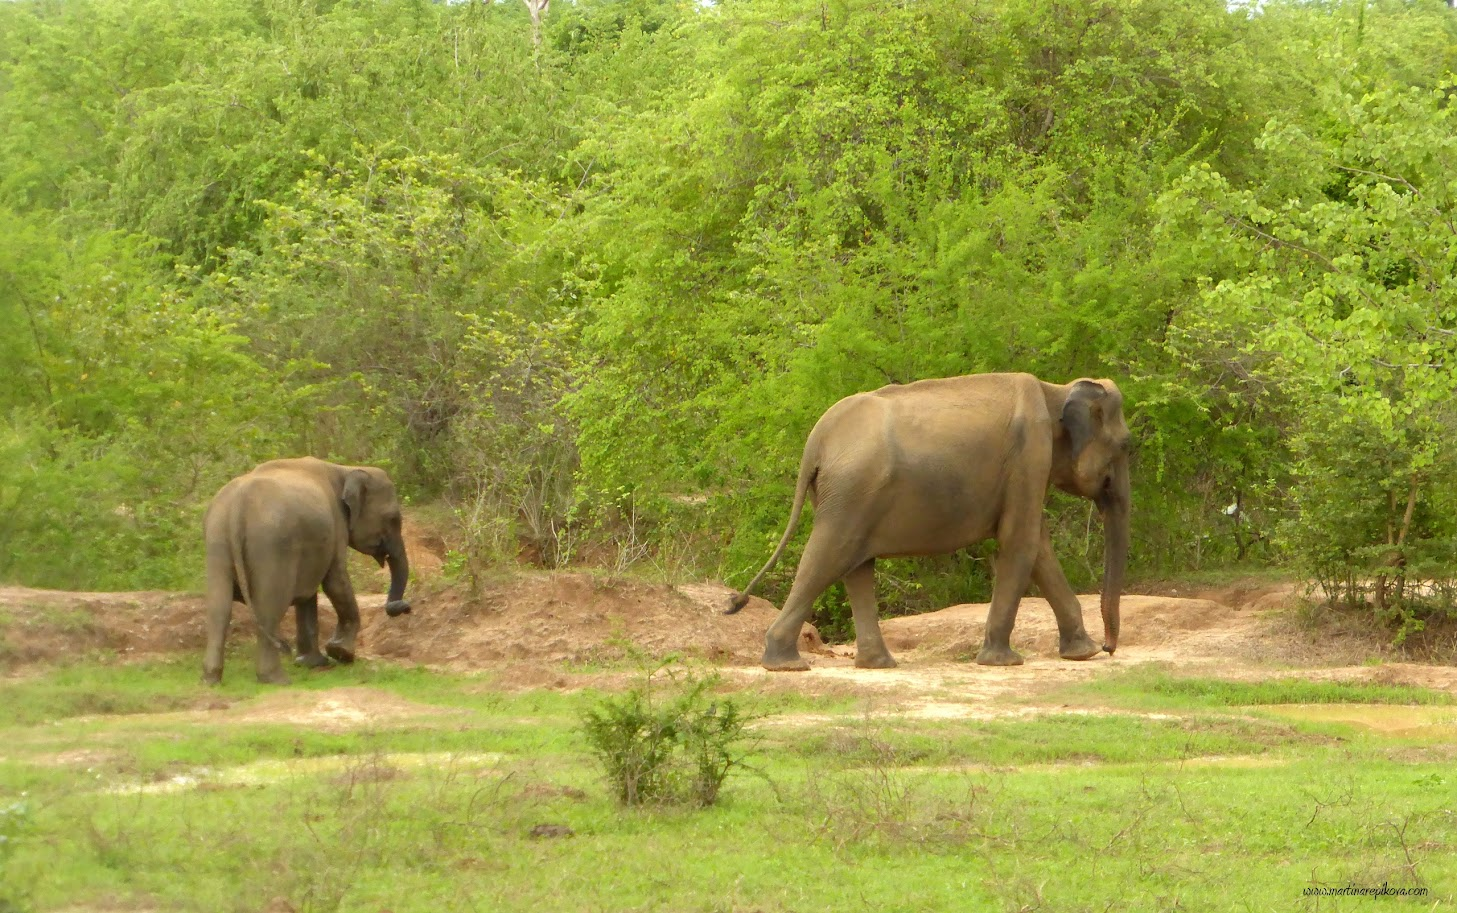 Elephants, Uda Walawe, Sri Lanka